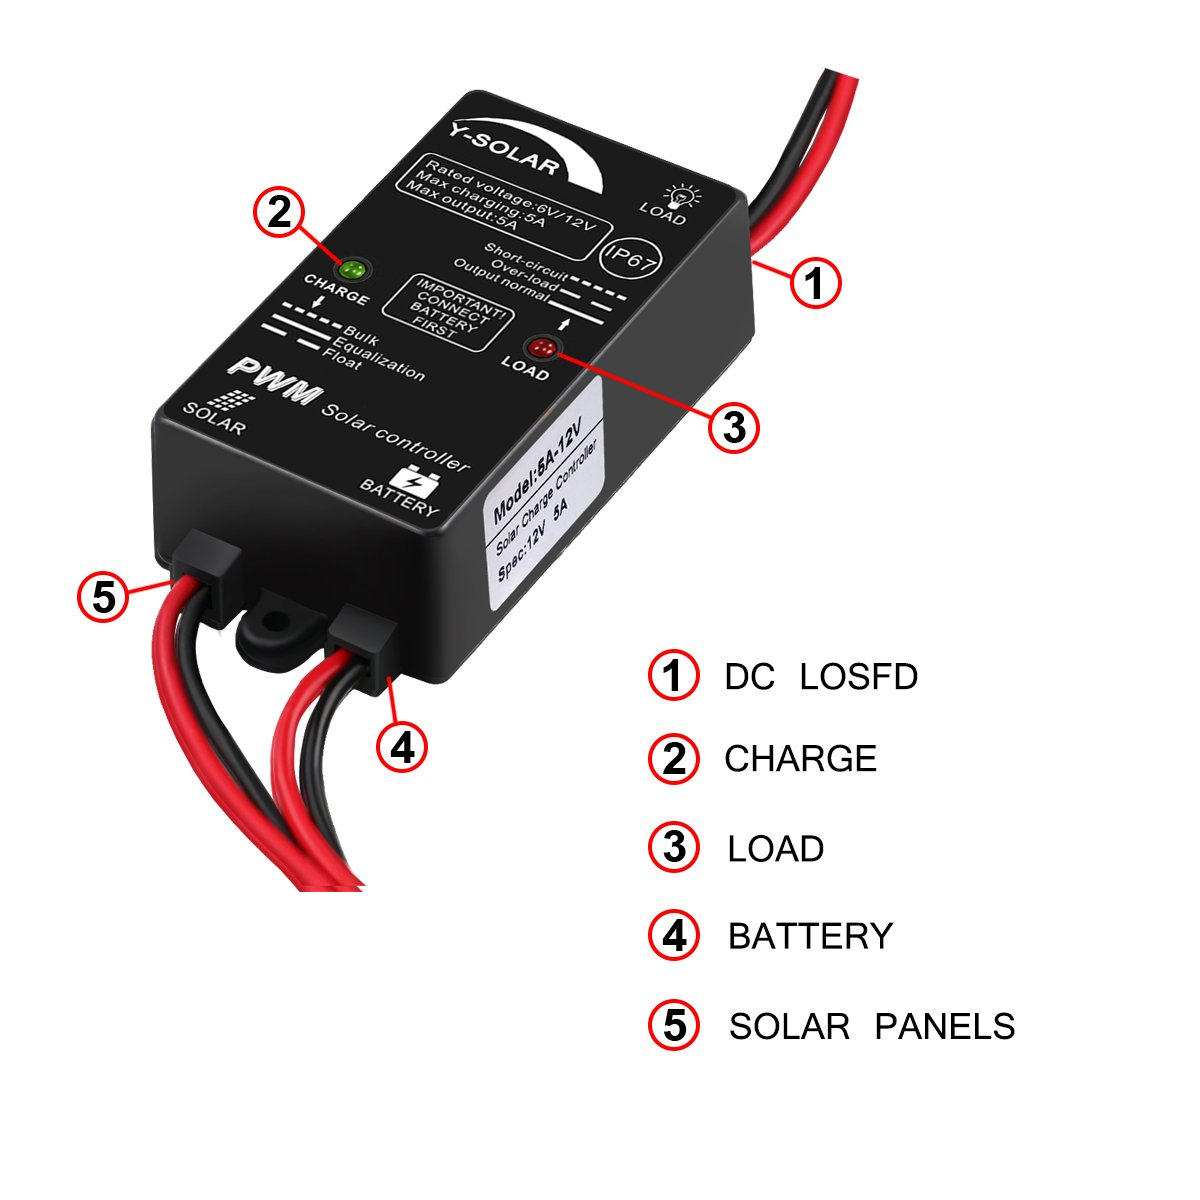 Solar Charge Controller Waterproof Y 5a Battery Charger Circuit Can 12v Lead Acid Or Sla Panel 6v Auto 24hours Load On Ip67 For Charging And Discharging Control